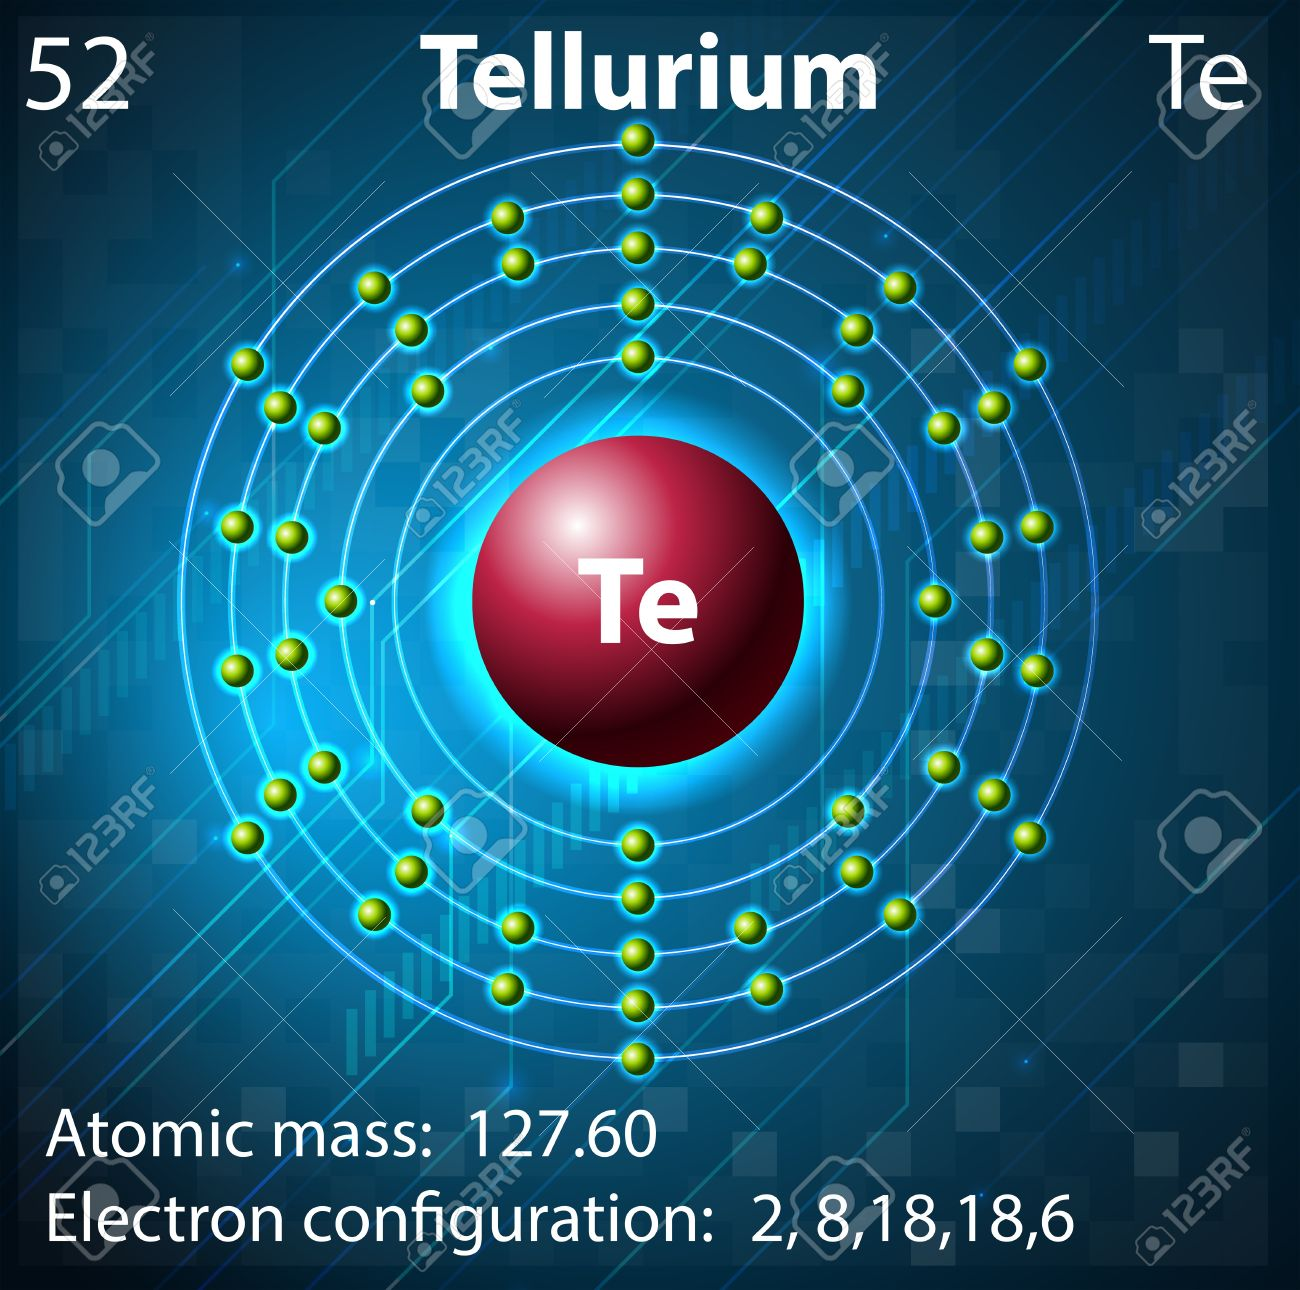 Tellurium Atomic Diagram Free Vehicle Wiring Diagrams Oxygen Atom Structure Stock Photo Illustration Of The Element Royalty Cliparts Vectors Rh 123rf Com Lines